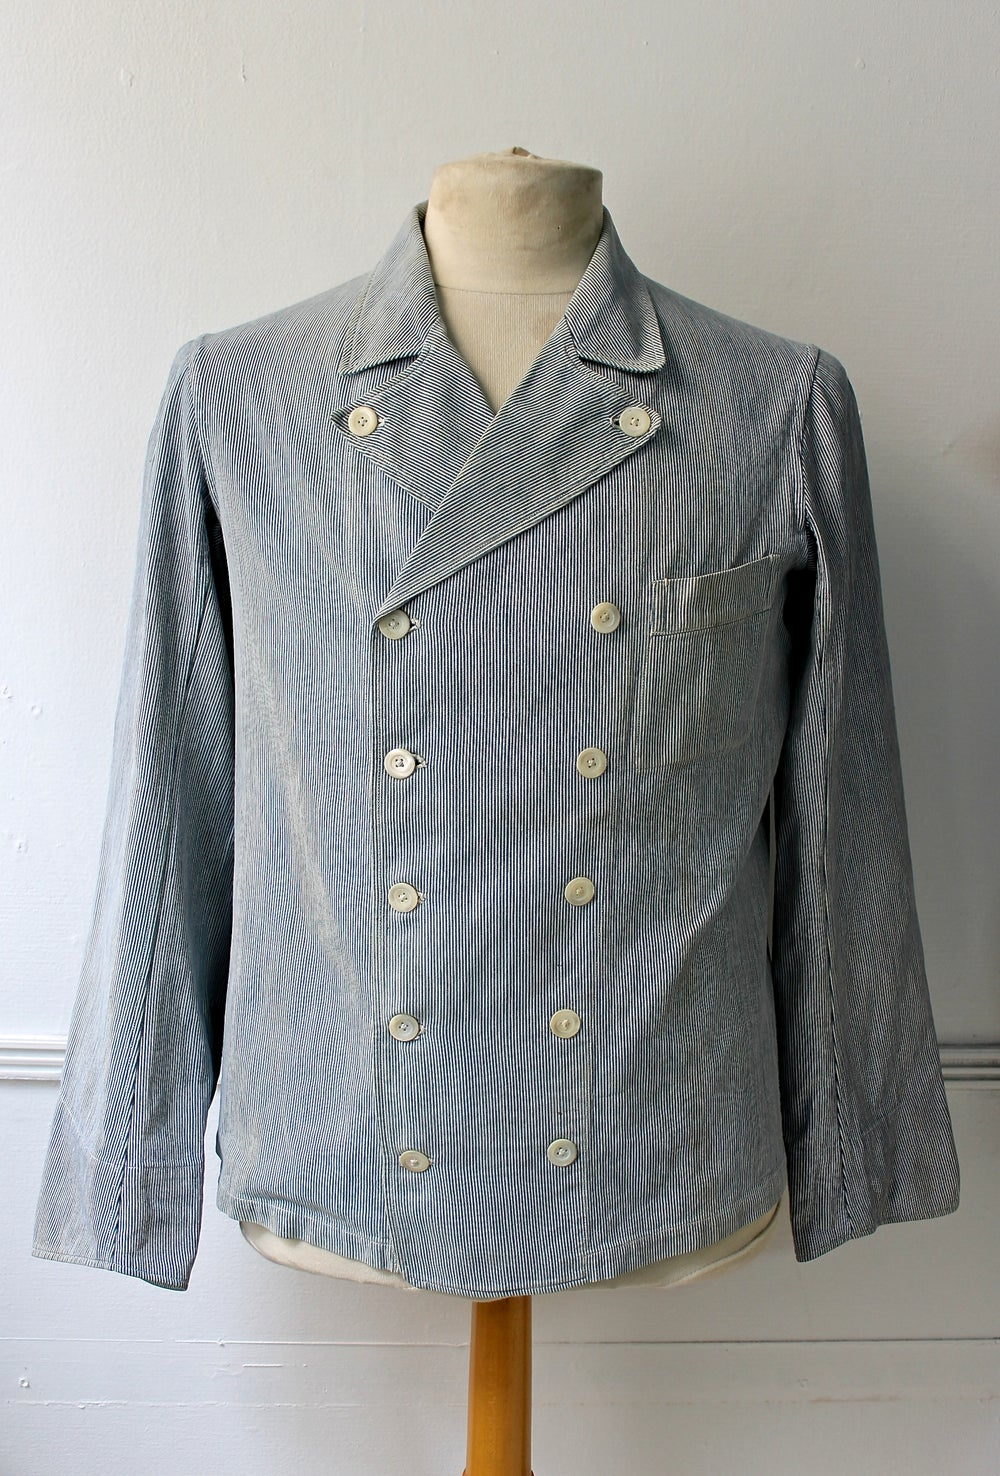 Image of 1900's FRENCH DOUBLE BREASTED WORK JACKET STRIPPED